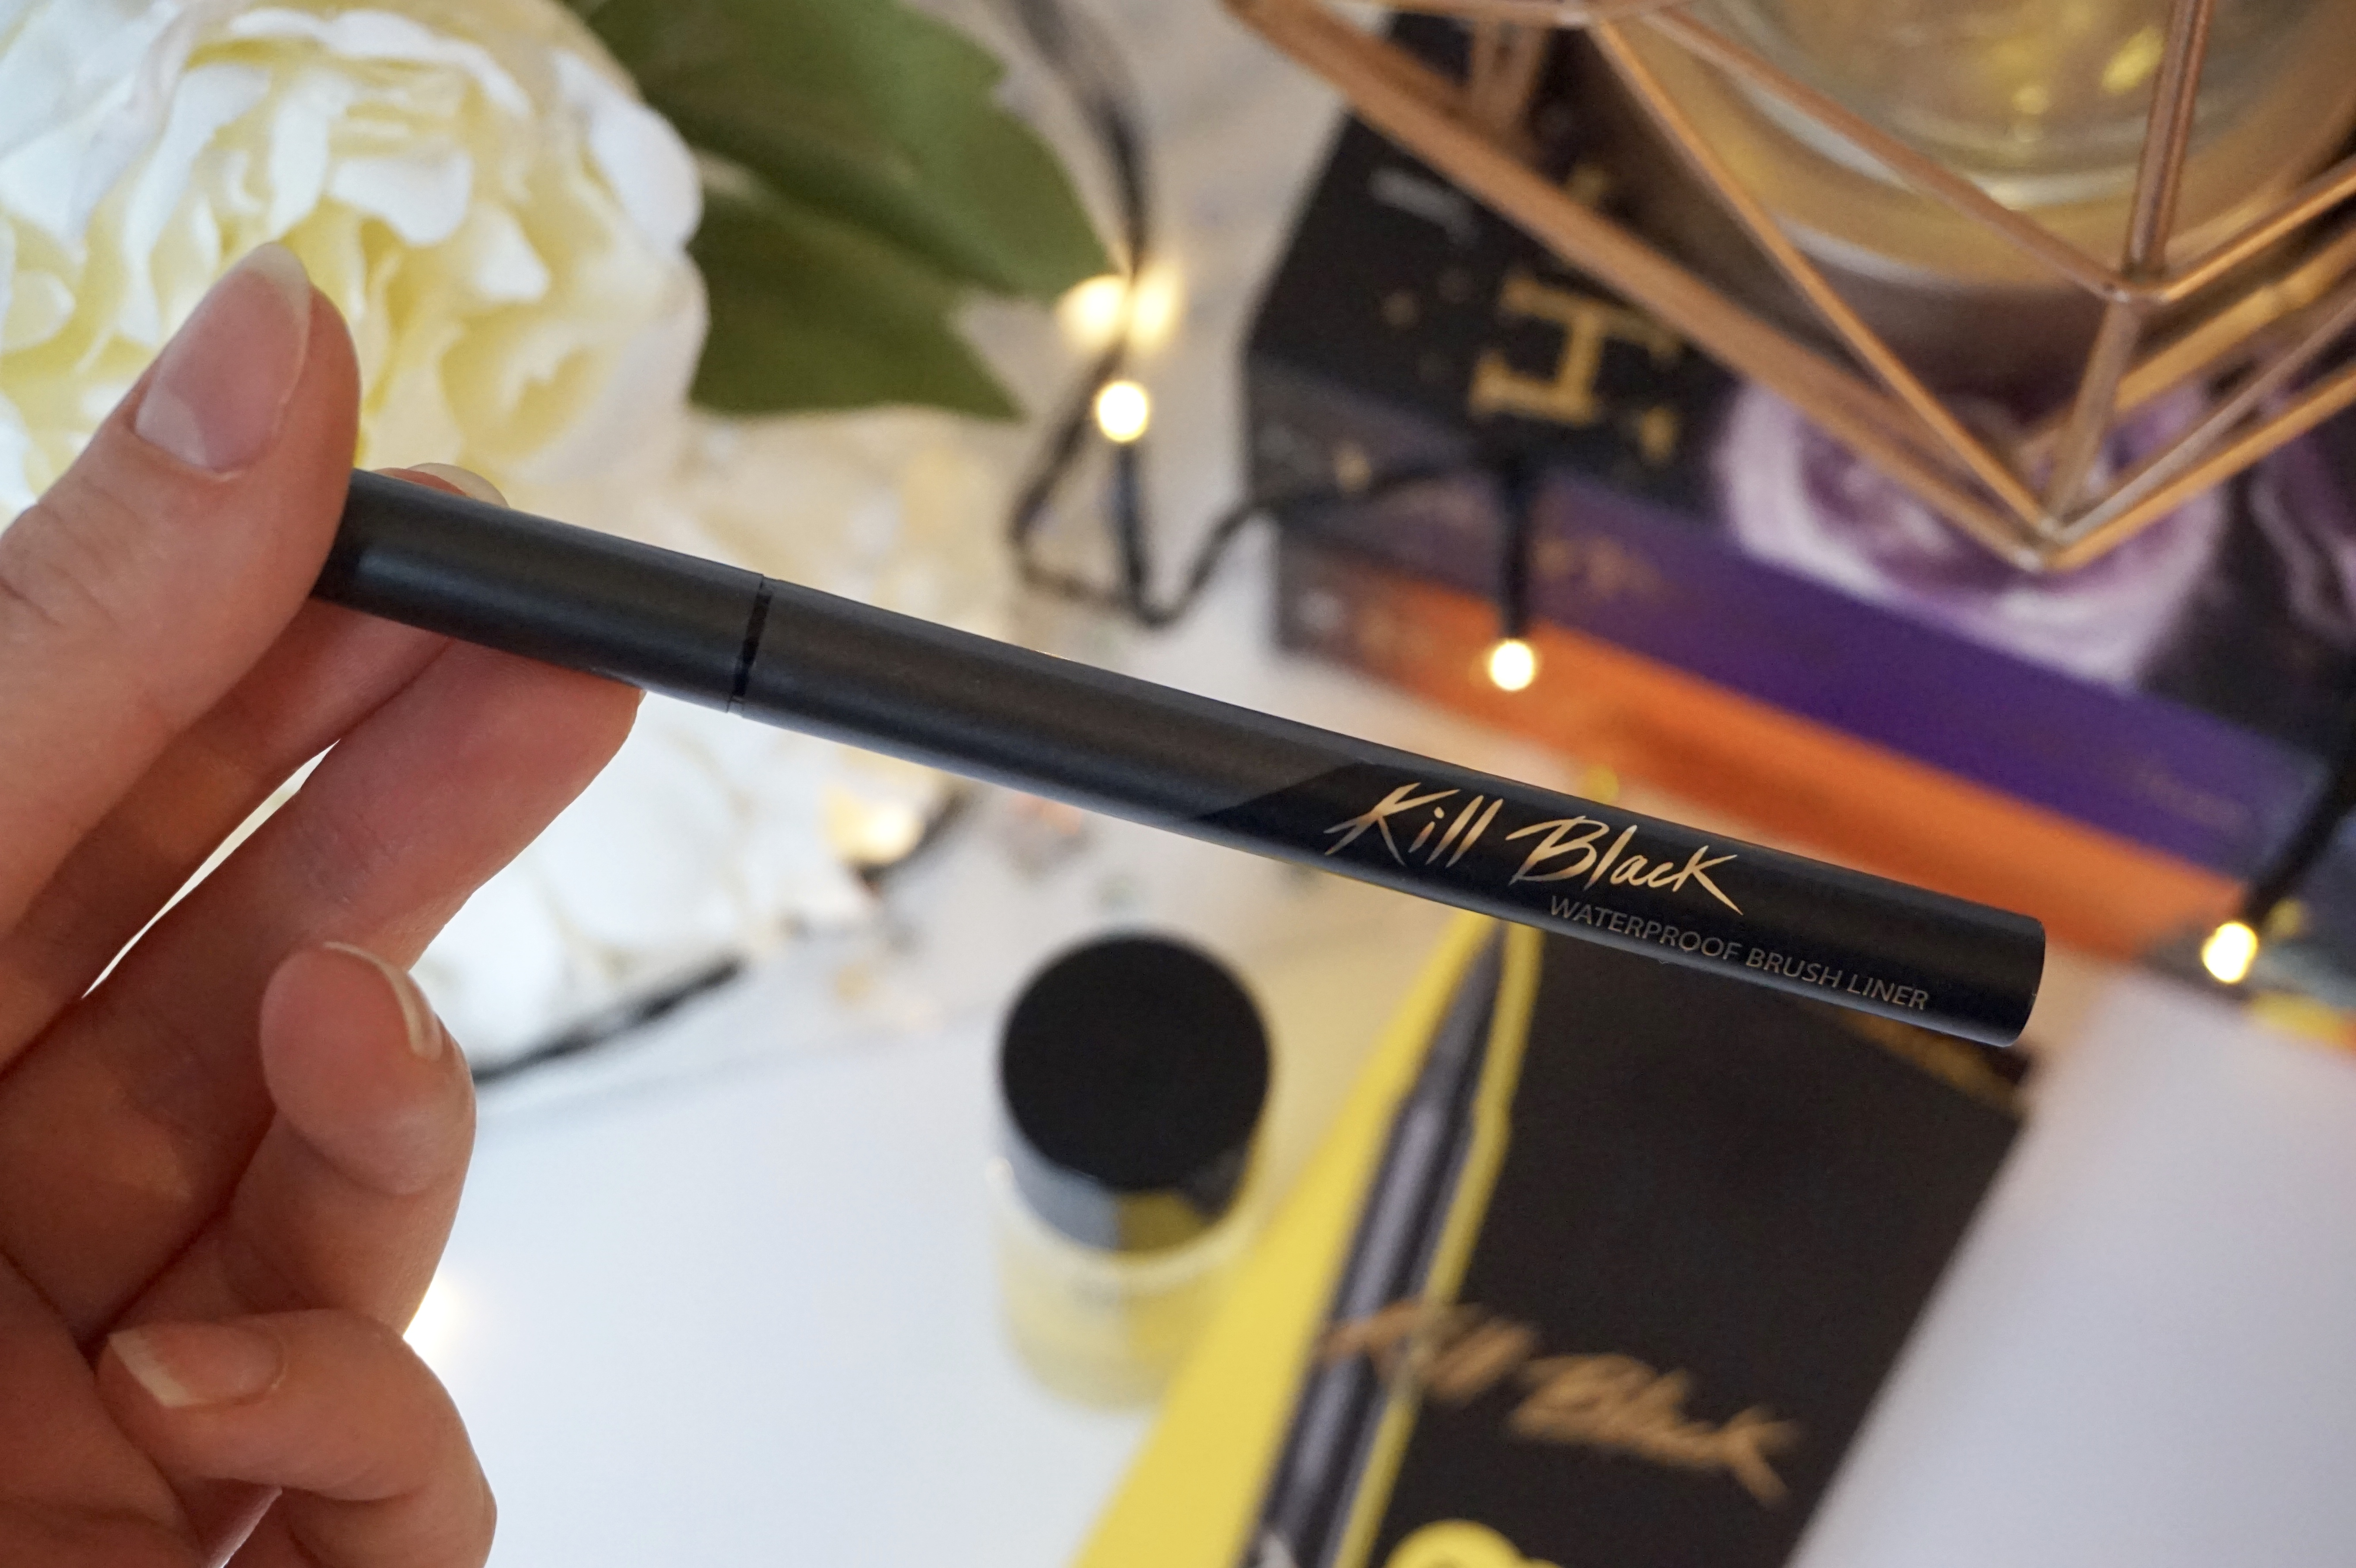 Revue Eyeliner Kill Black Waterproof Clio